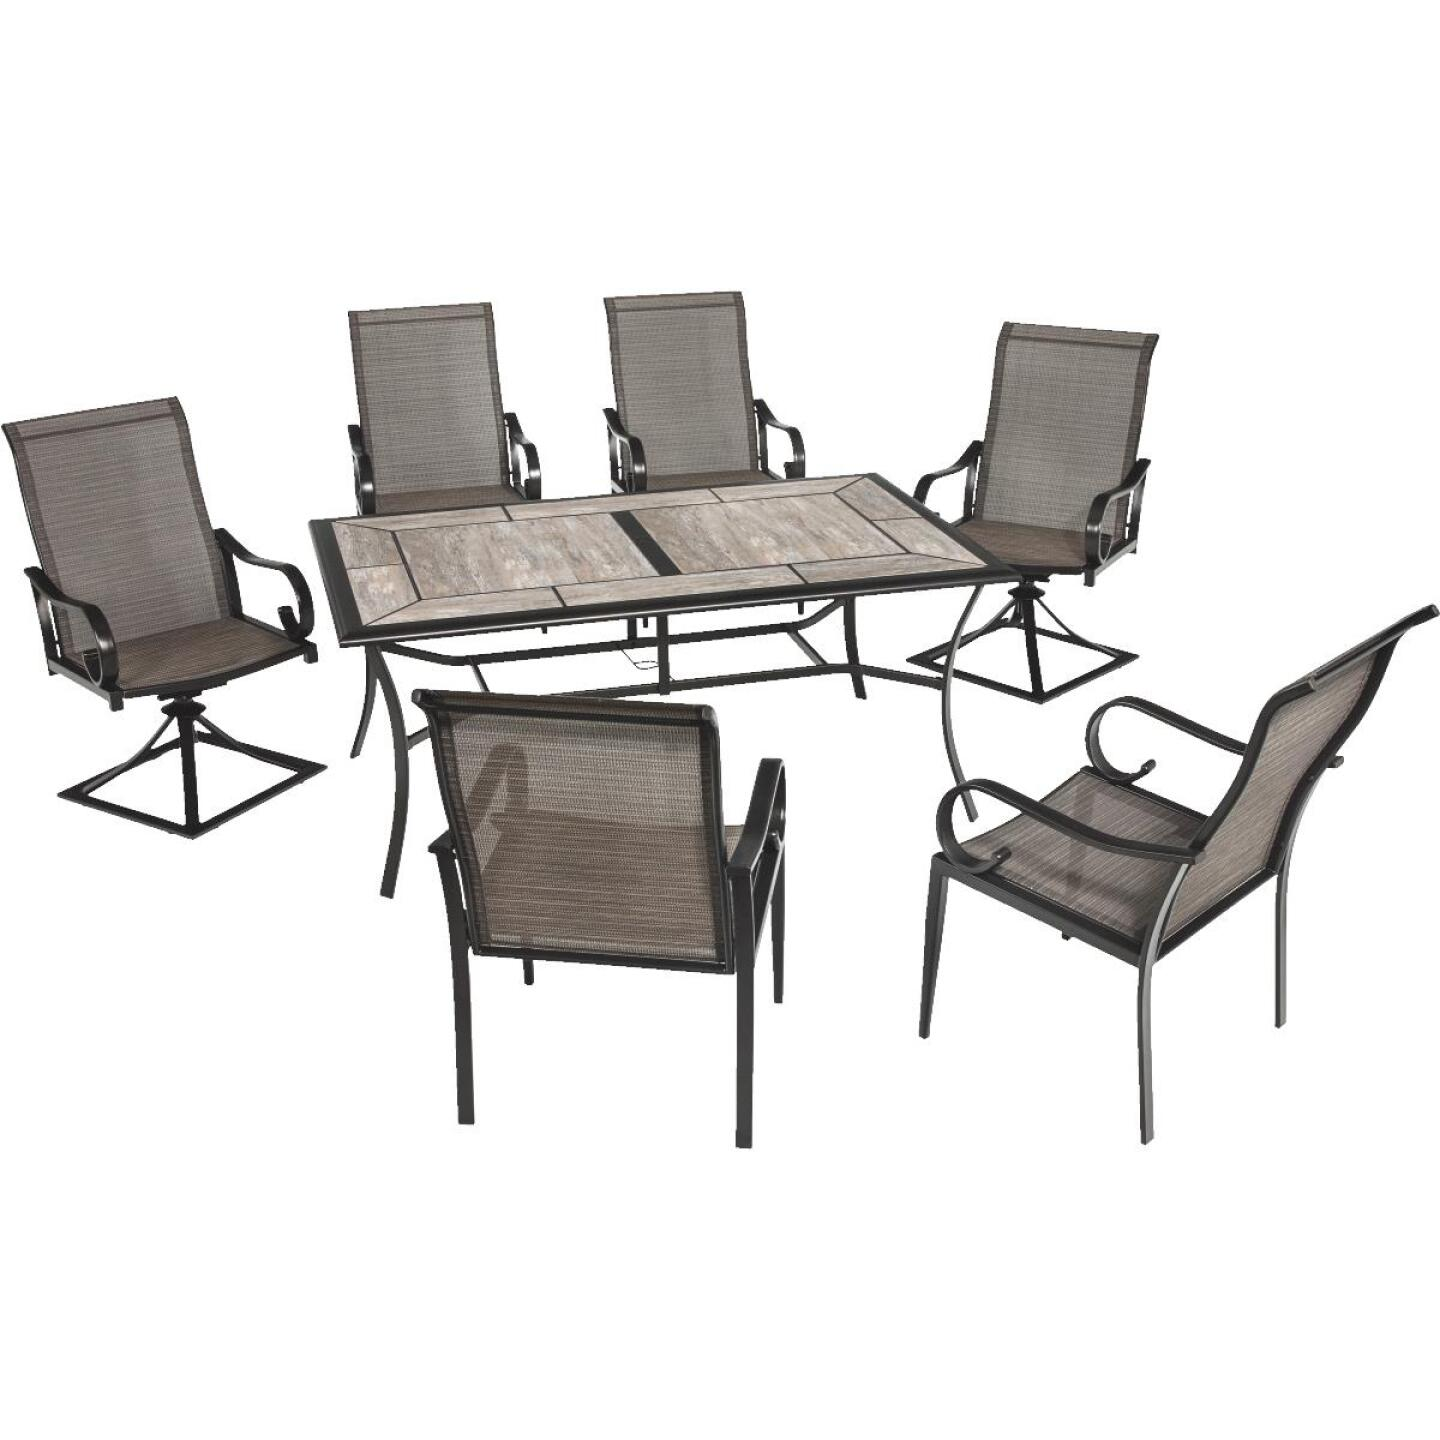 Outdoor Expressions Berkshire 7-Piece Dining Set Image 331